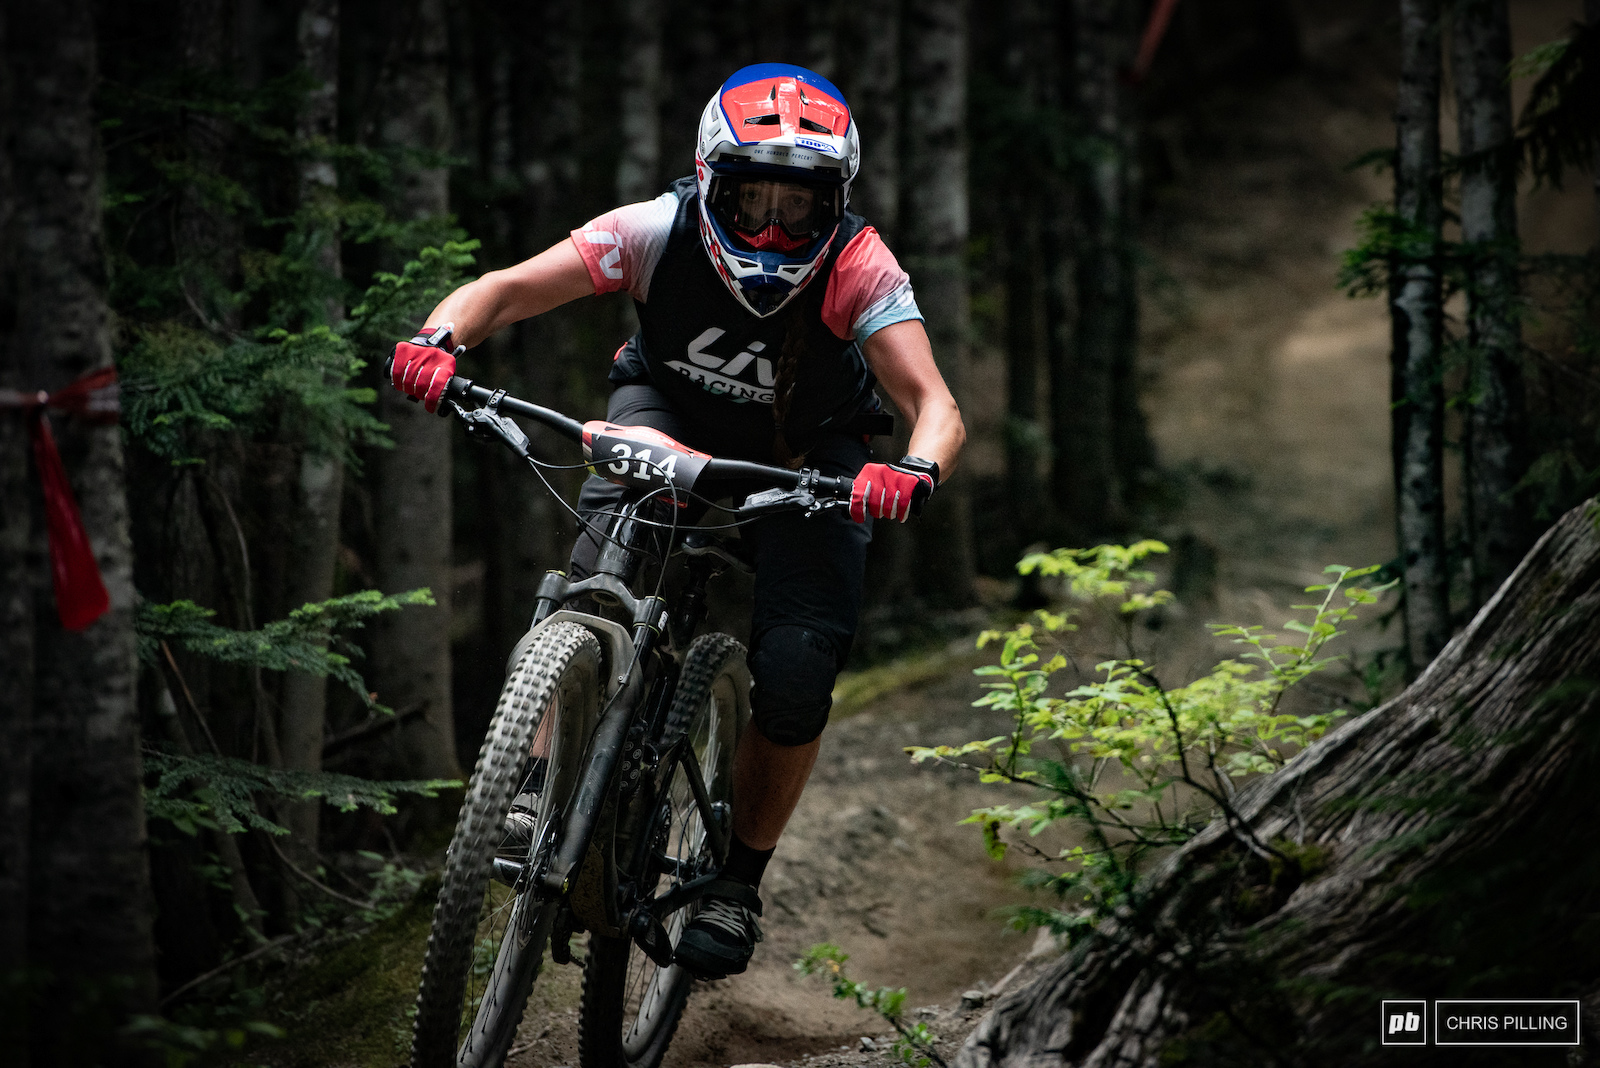 Leonie Picton focused through the ribbon of single track that is Too Tight